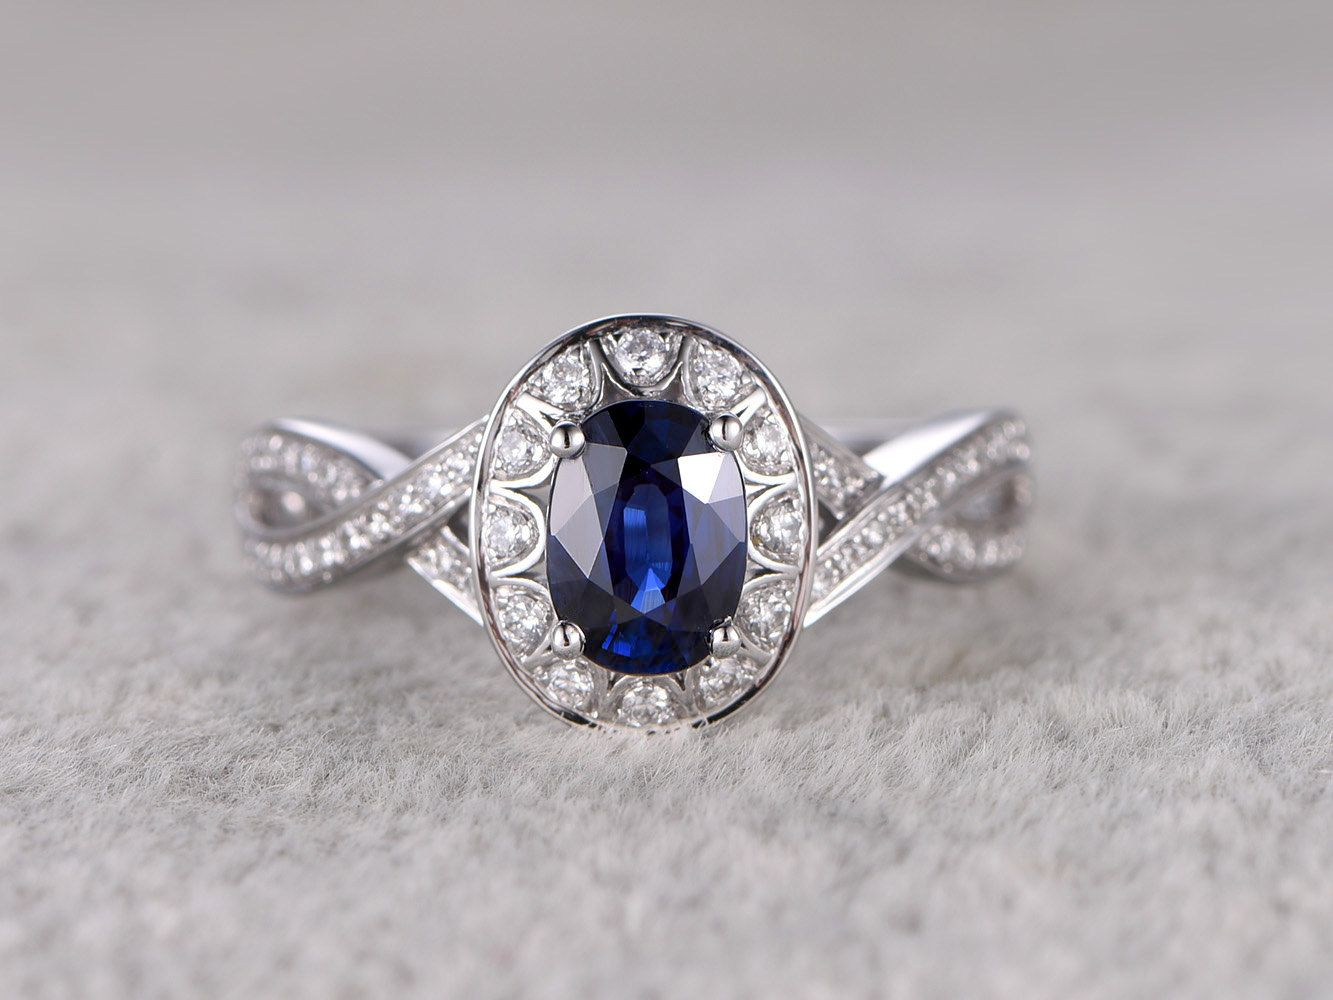 Natural Shire Engagement Ring 1 18ctw Blue Stone Curved Loop Diamond Wedding Band 14k White Gold